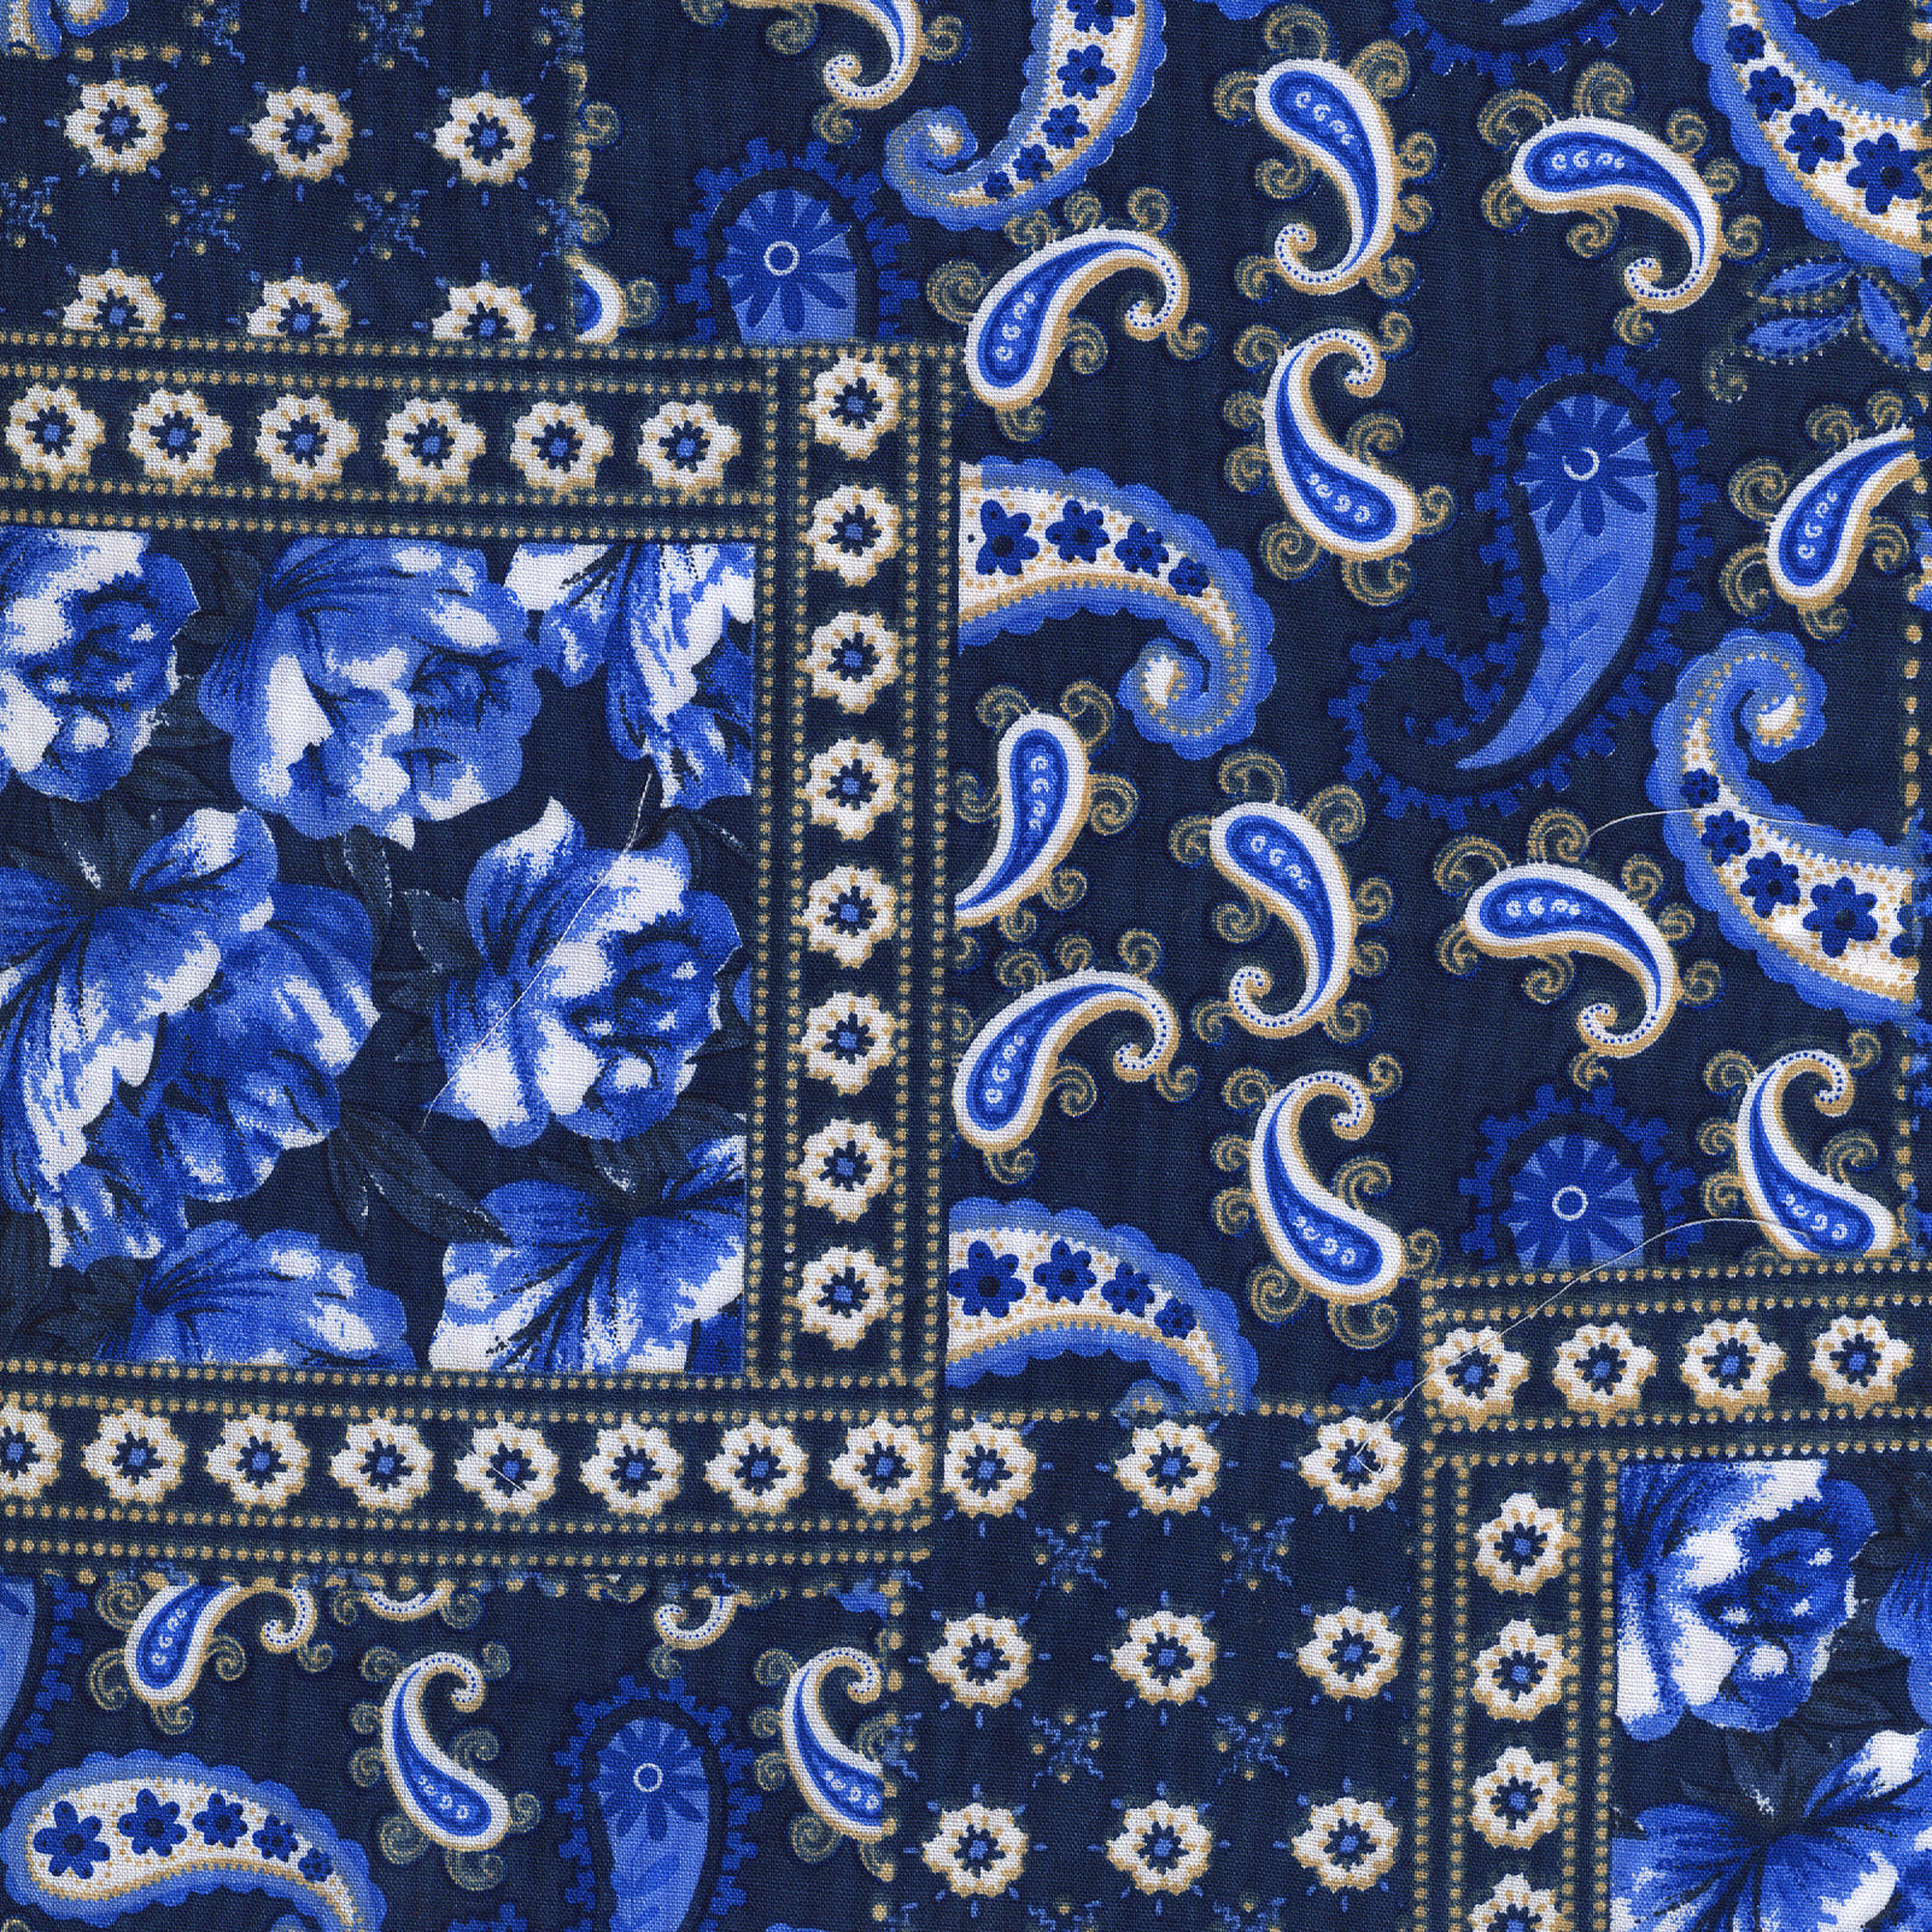 Shason Textile Soft Poly Cotton Bandana Print Fabric For Fashion Projects, 3 yds, Multiple Colors